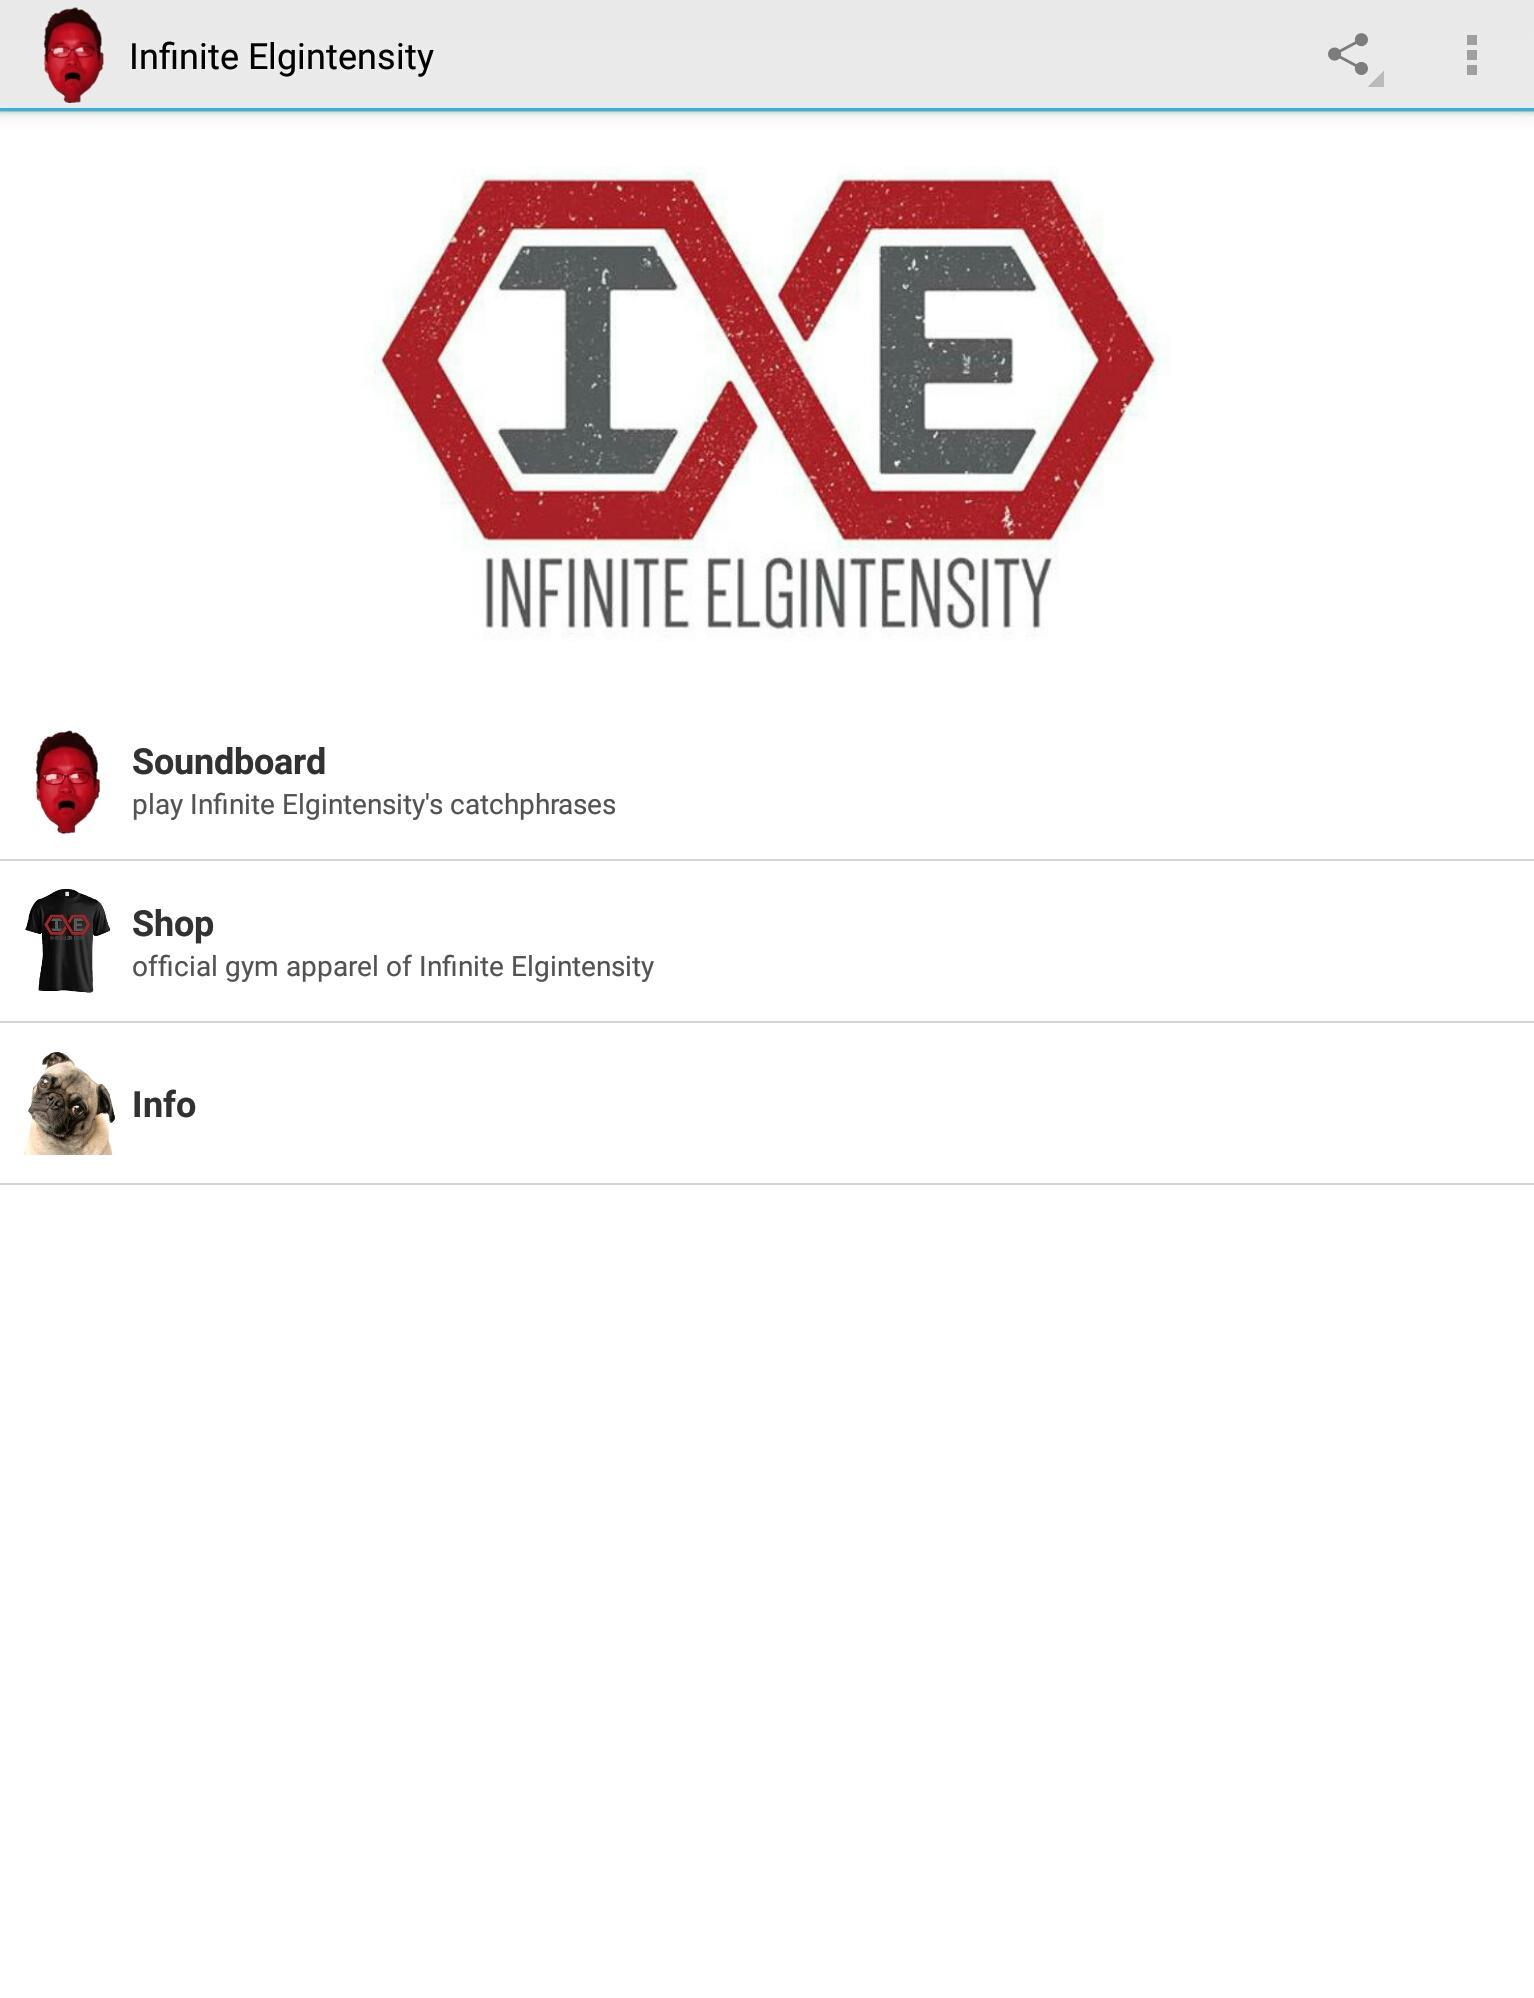 cd6760e0 The Infinite Elgintensity App for Android - APK Download